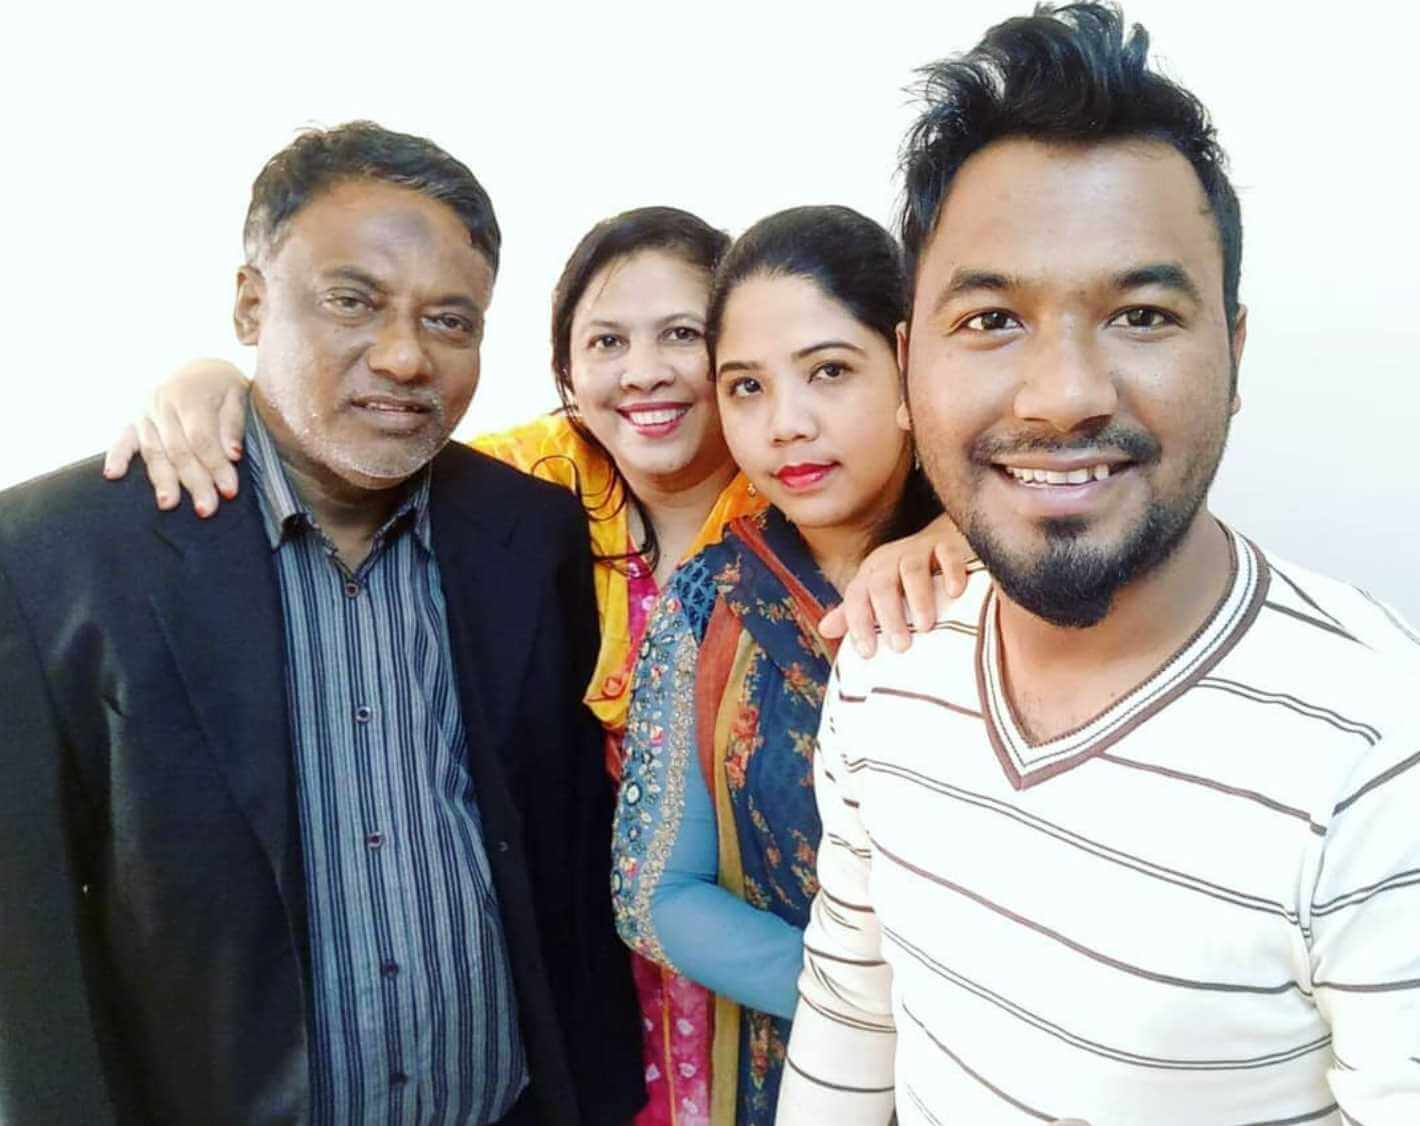 Ziaul Hoque Polash with her Family Photo